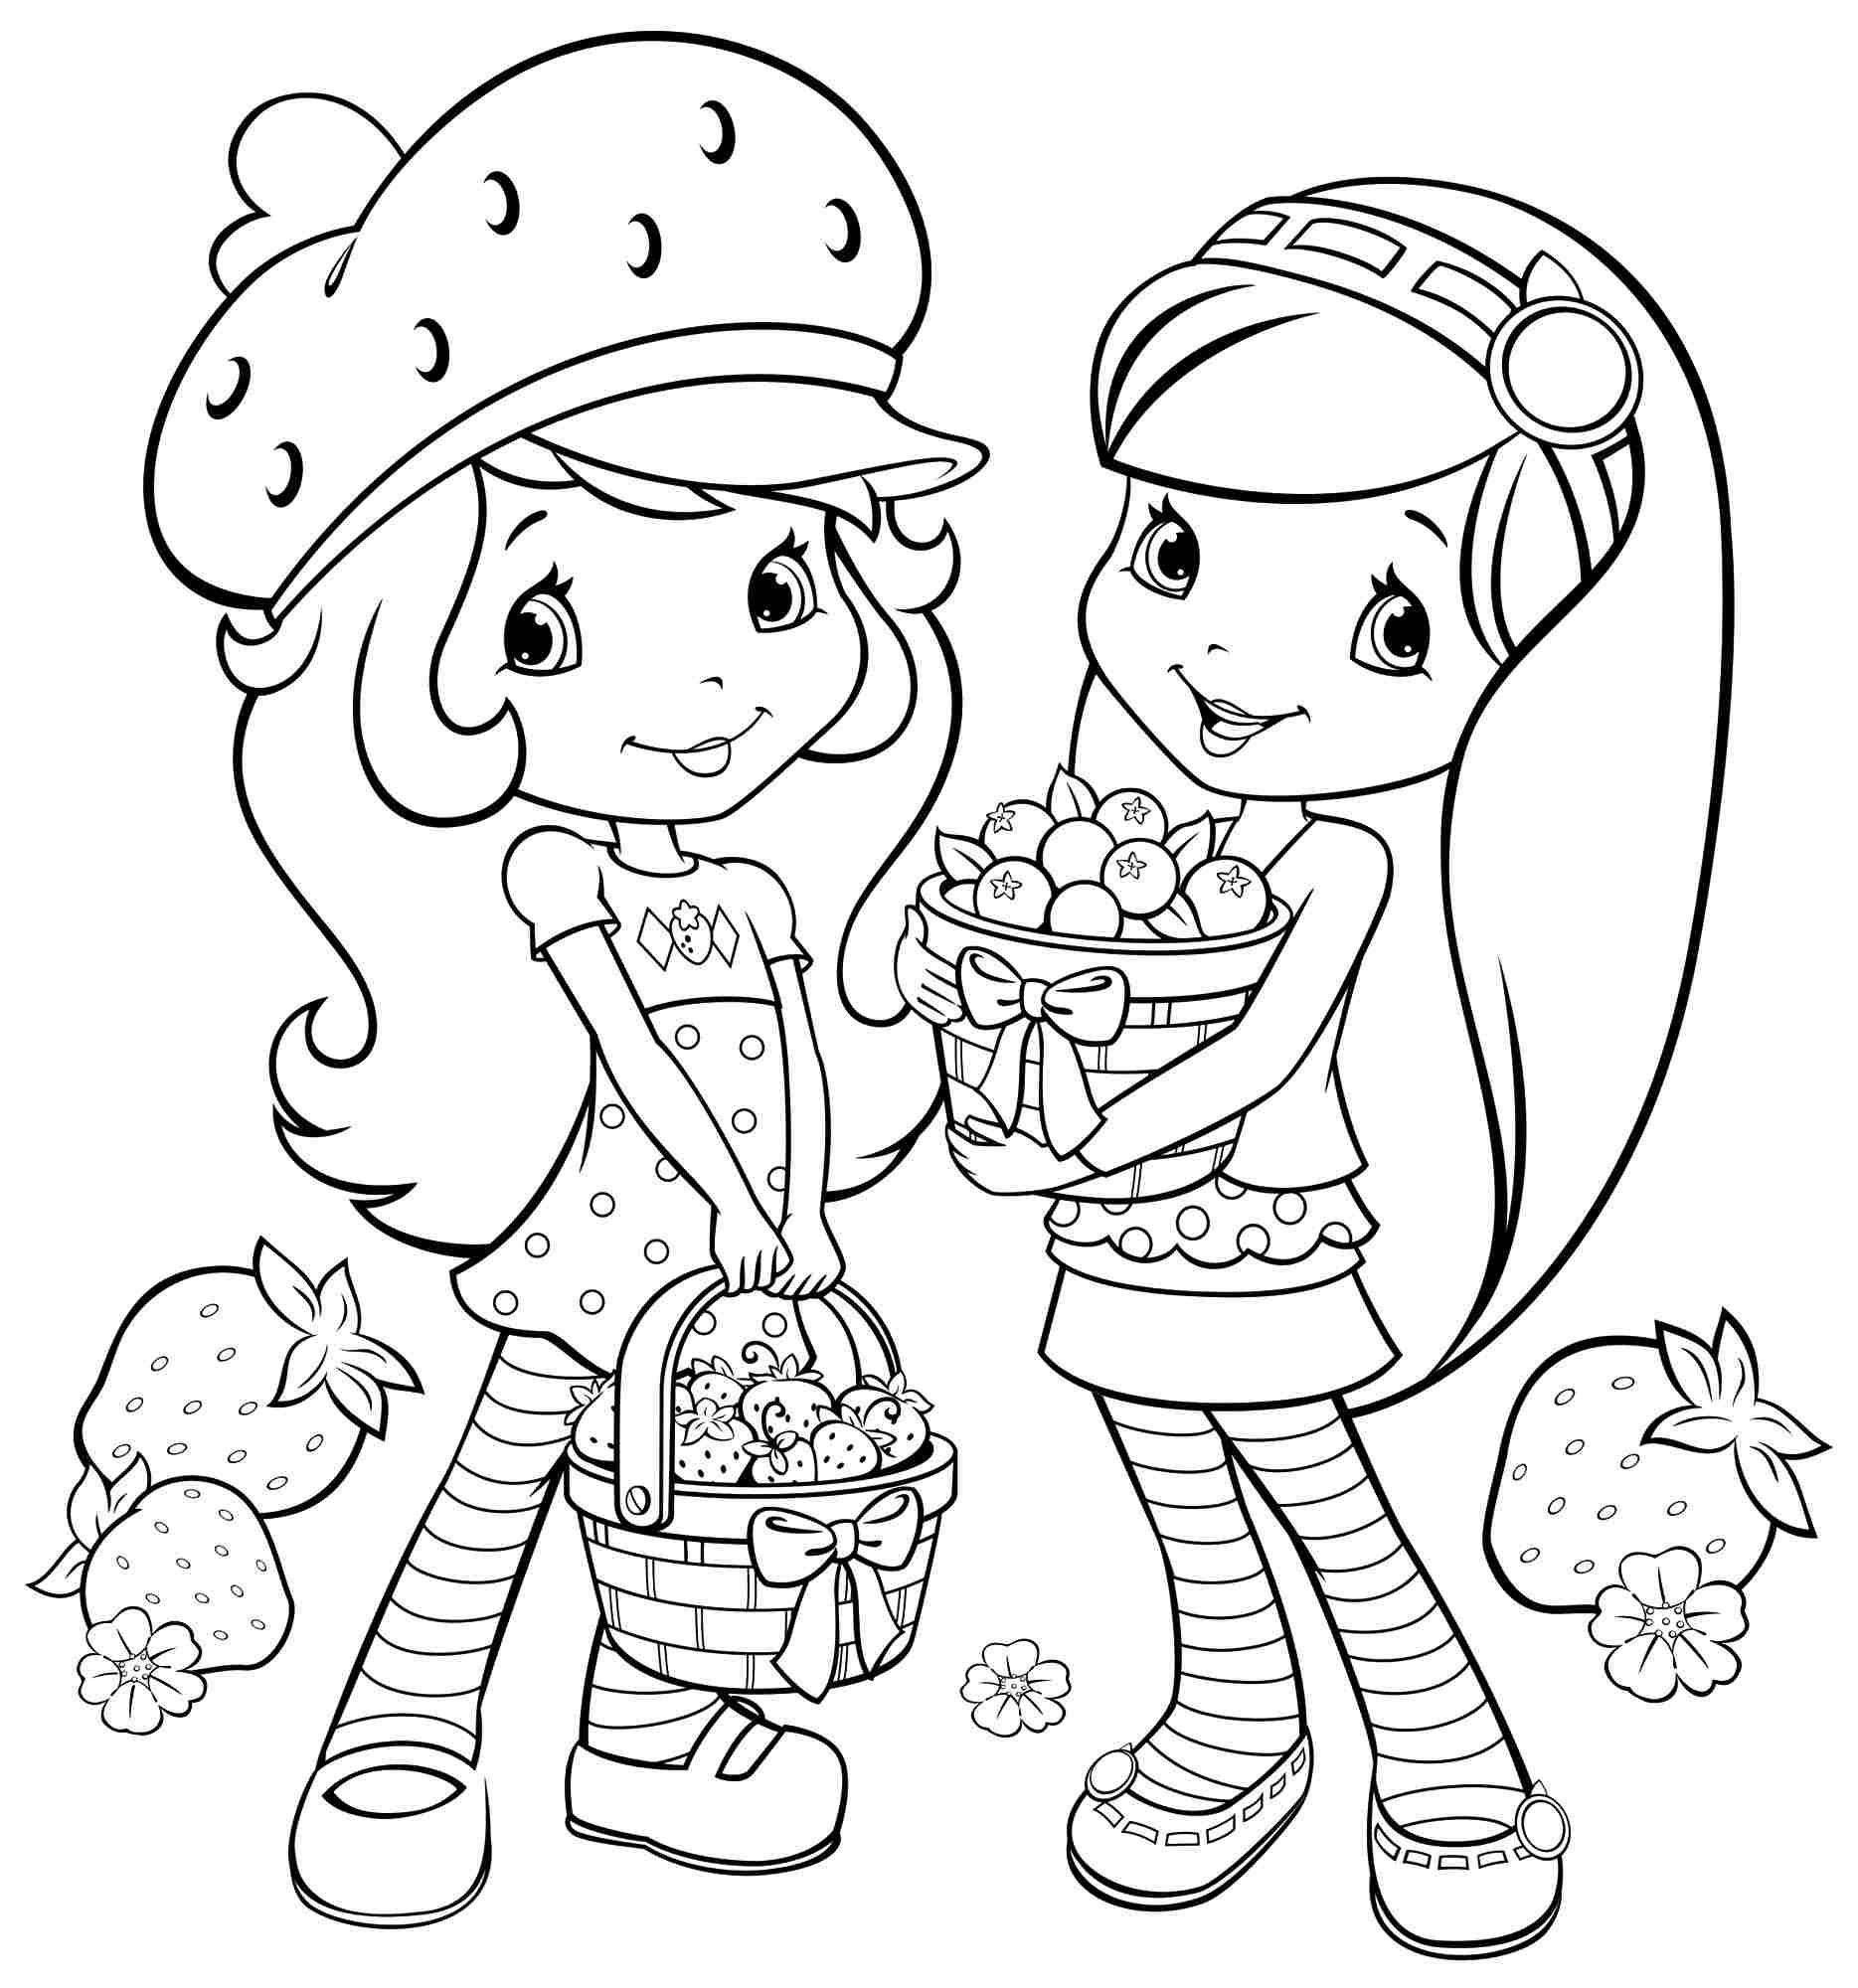 Printable Coloring Pages Cartoon Strawberry Shortcake And Friends ...